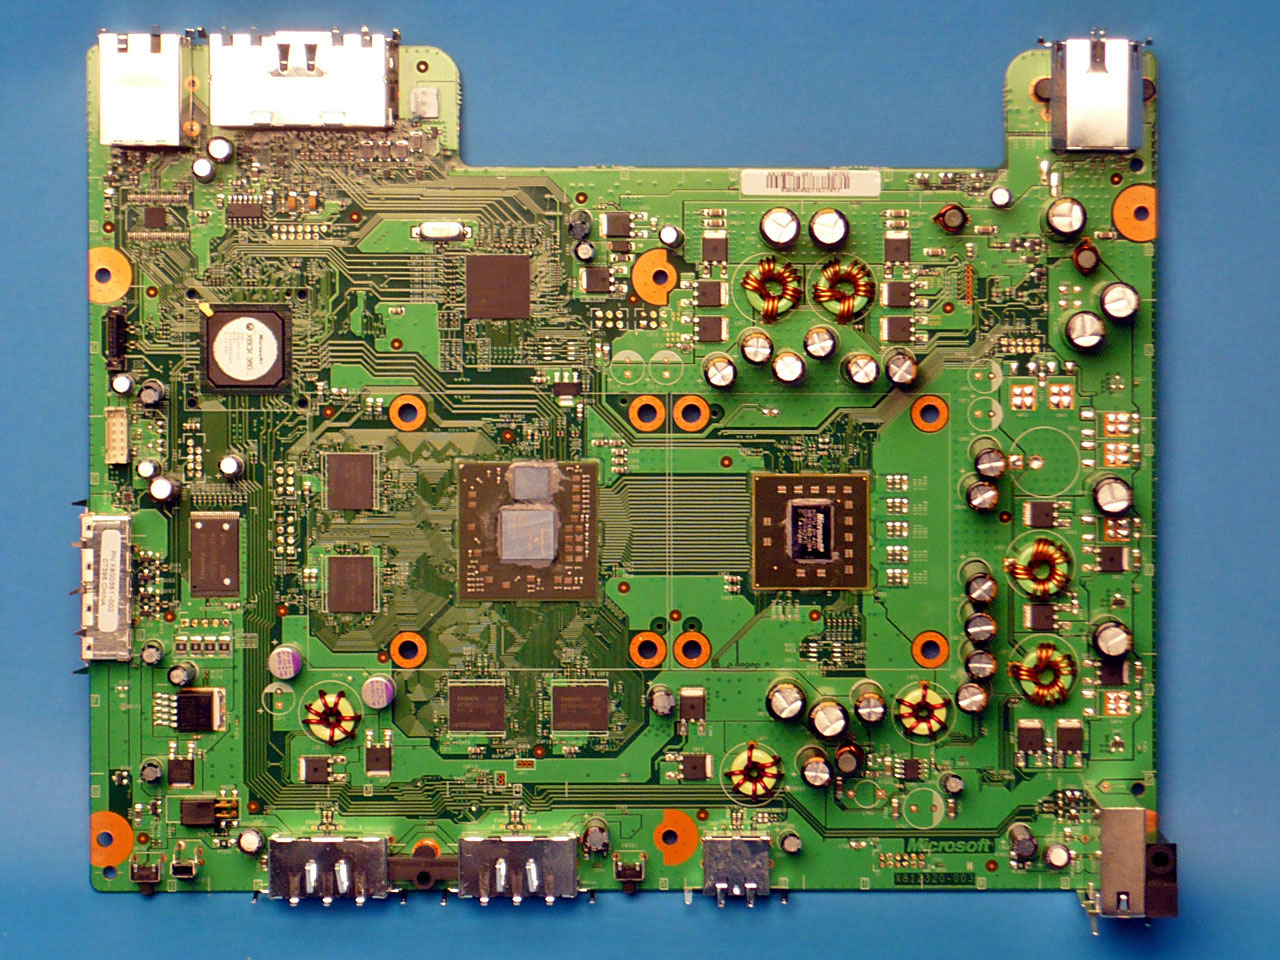 Xbox 360 motherboards wt blog xbox360motherboardfalconwestingames ccuart Gallery